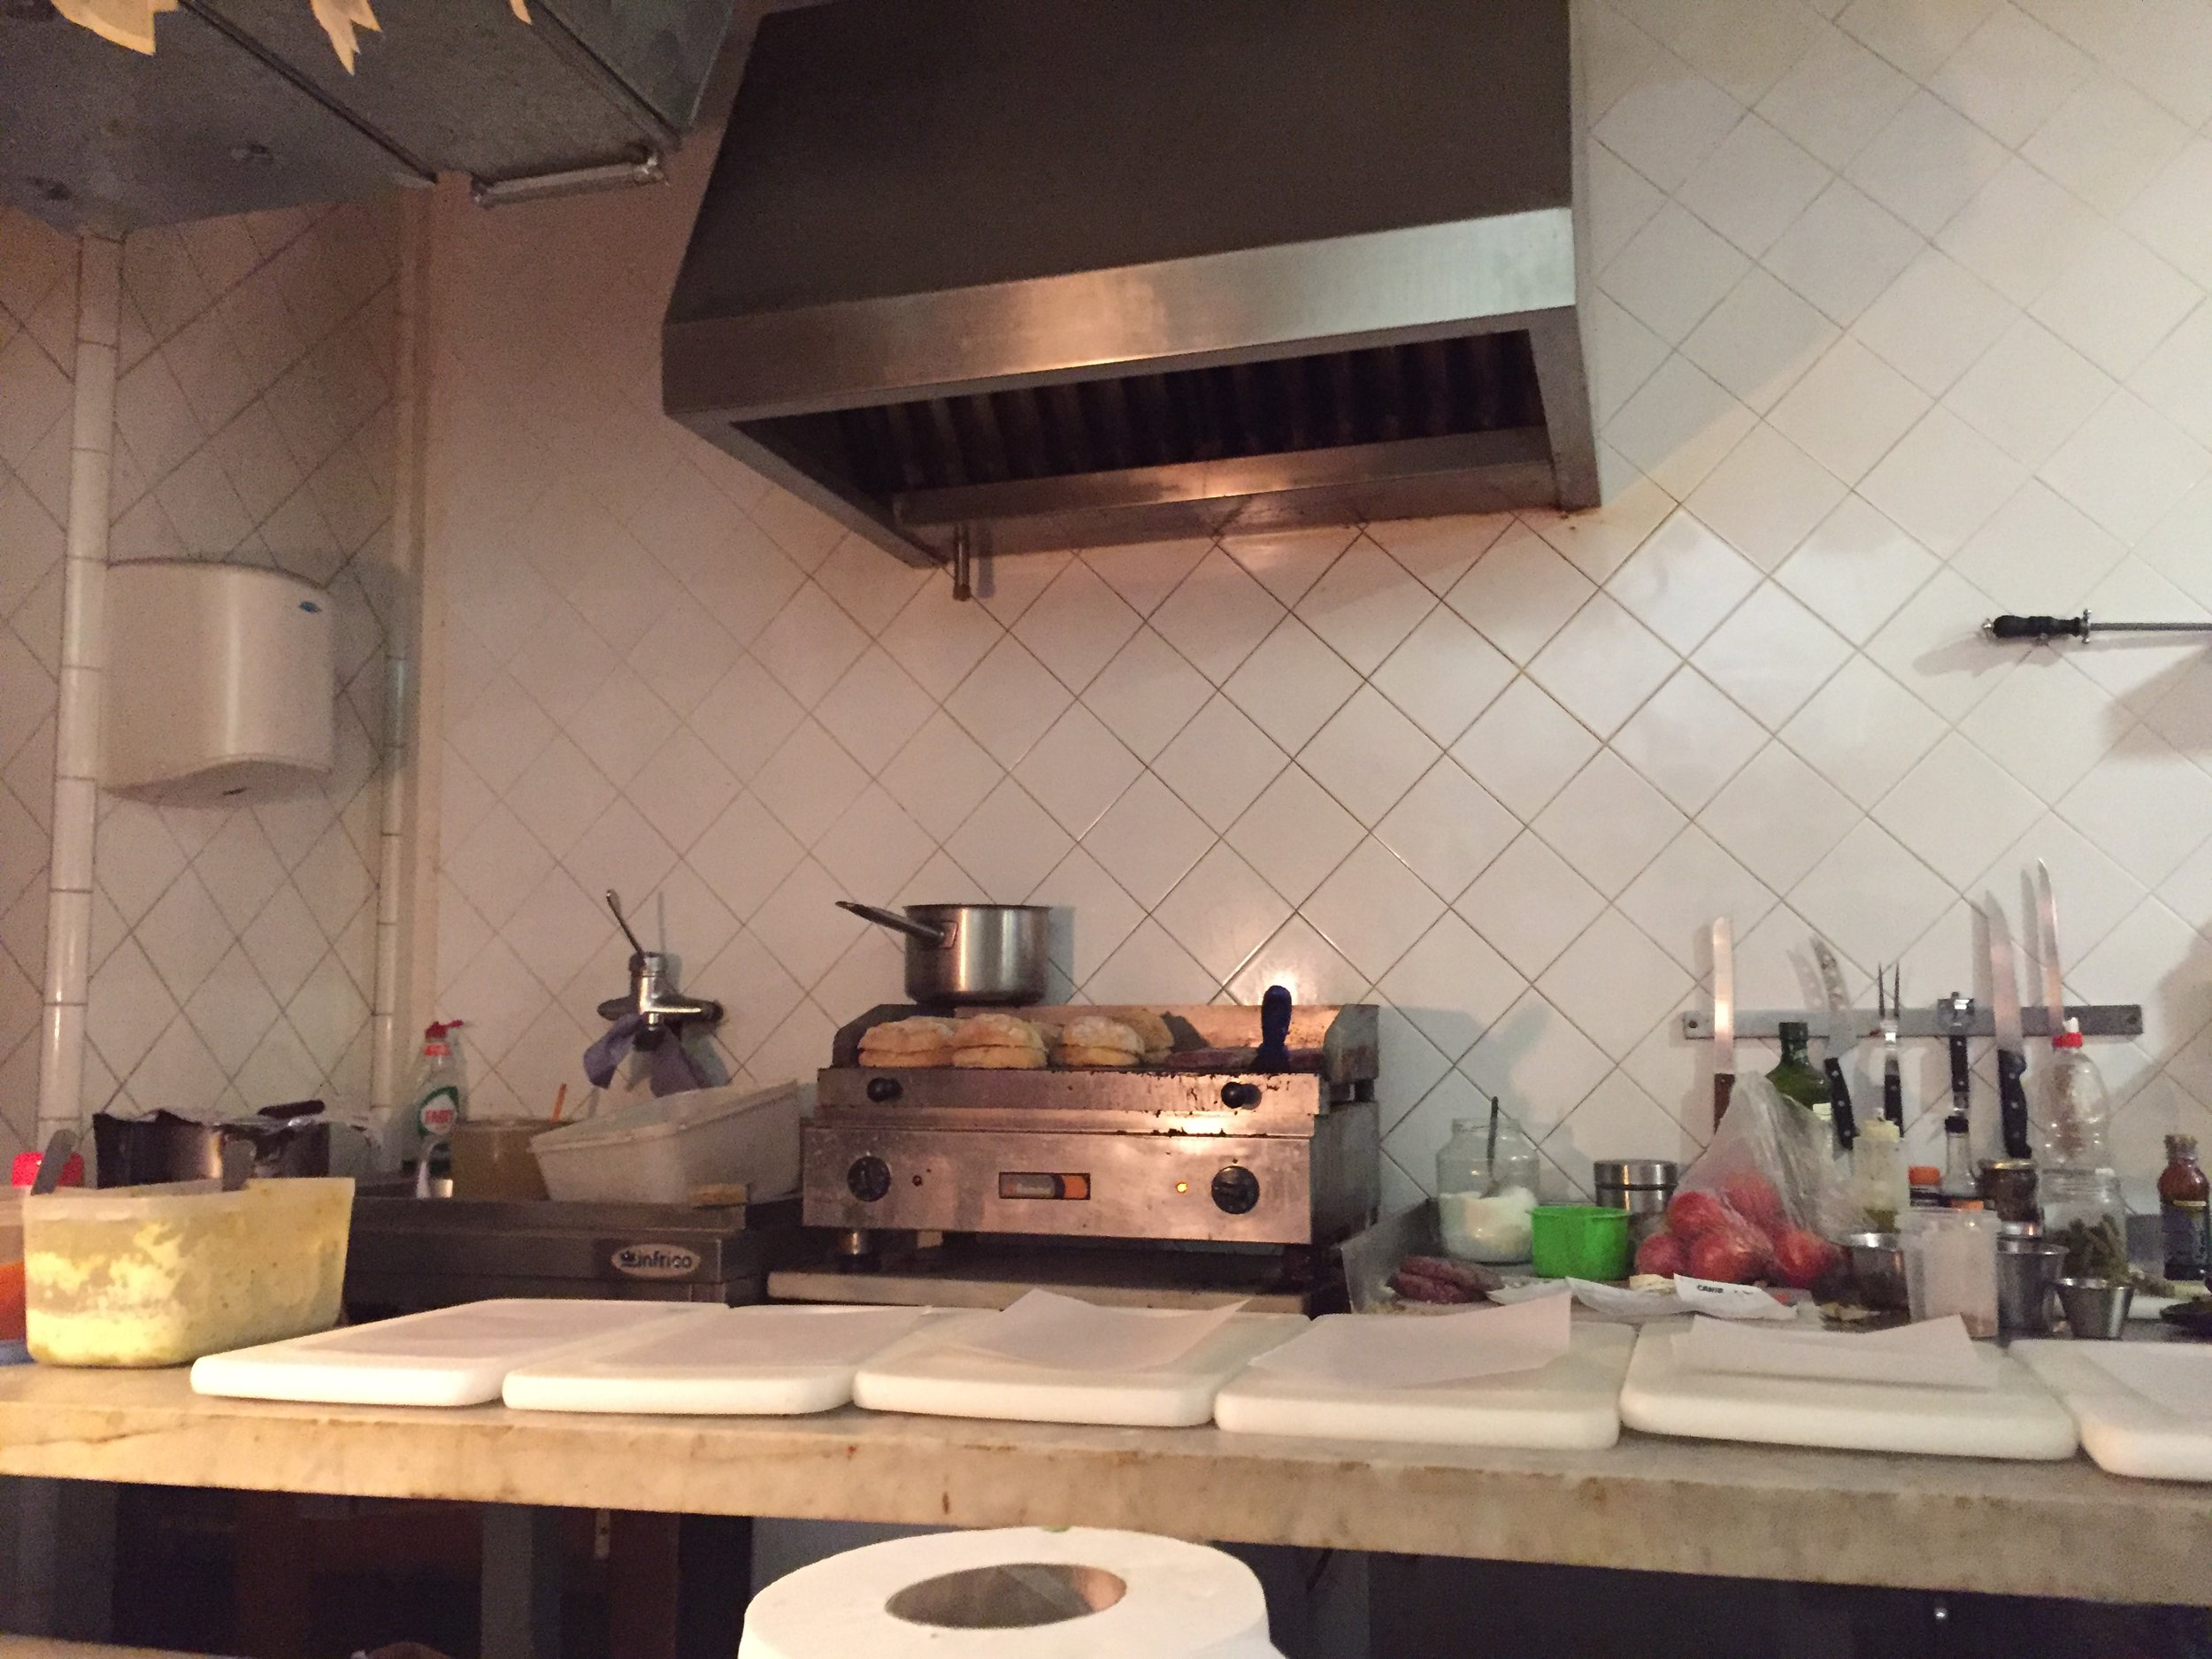 The little open kitchen greets you upon entering